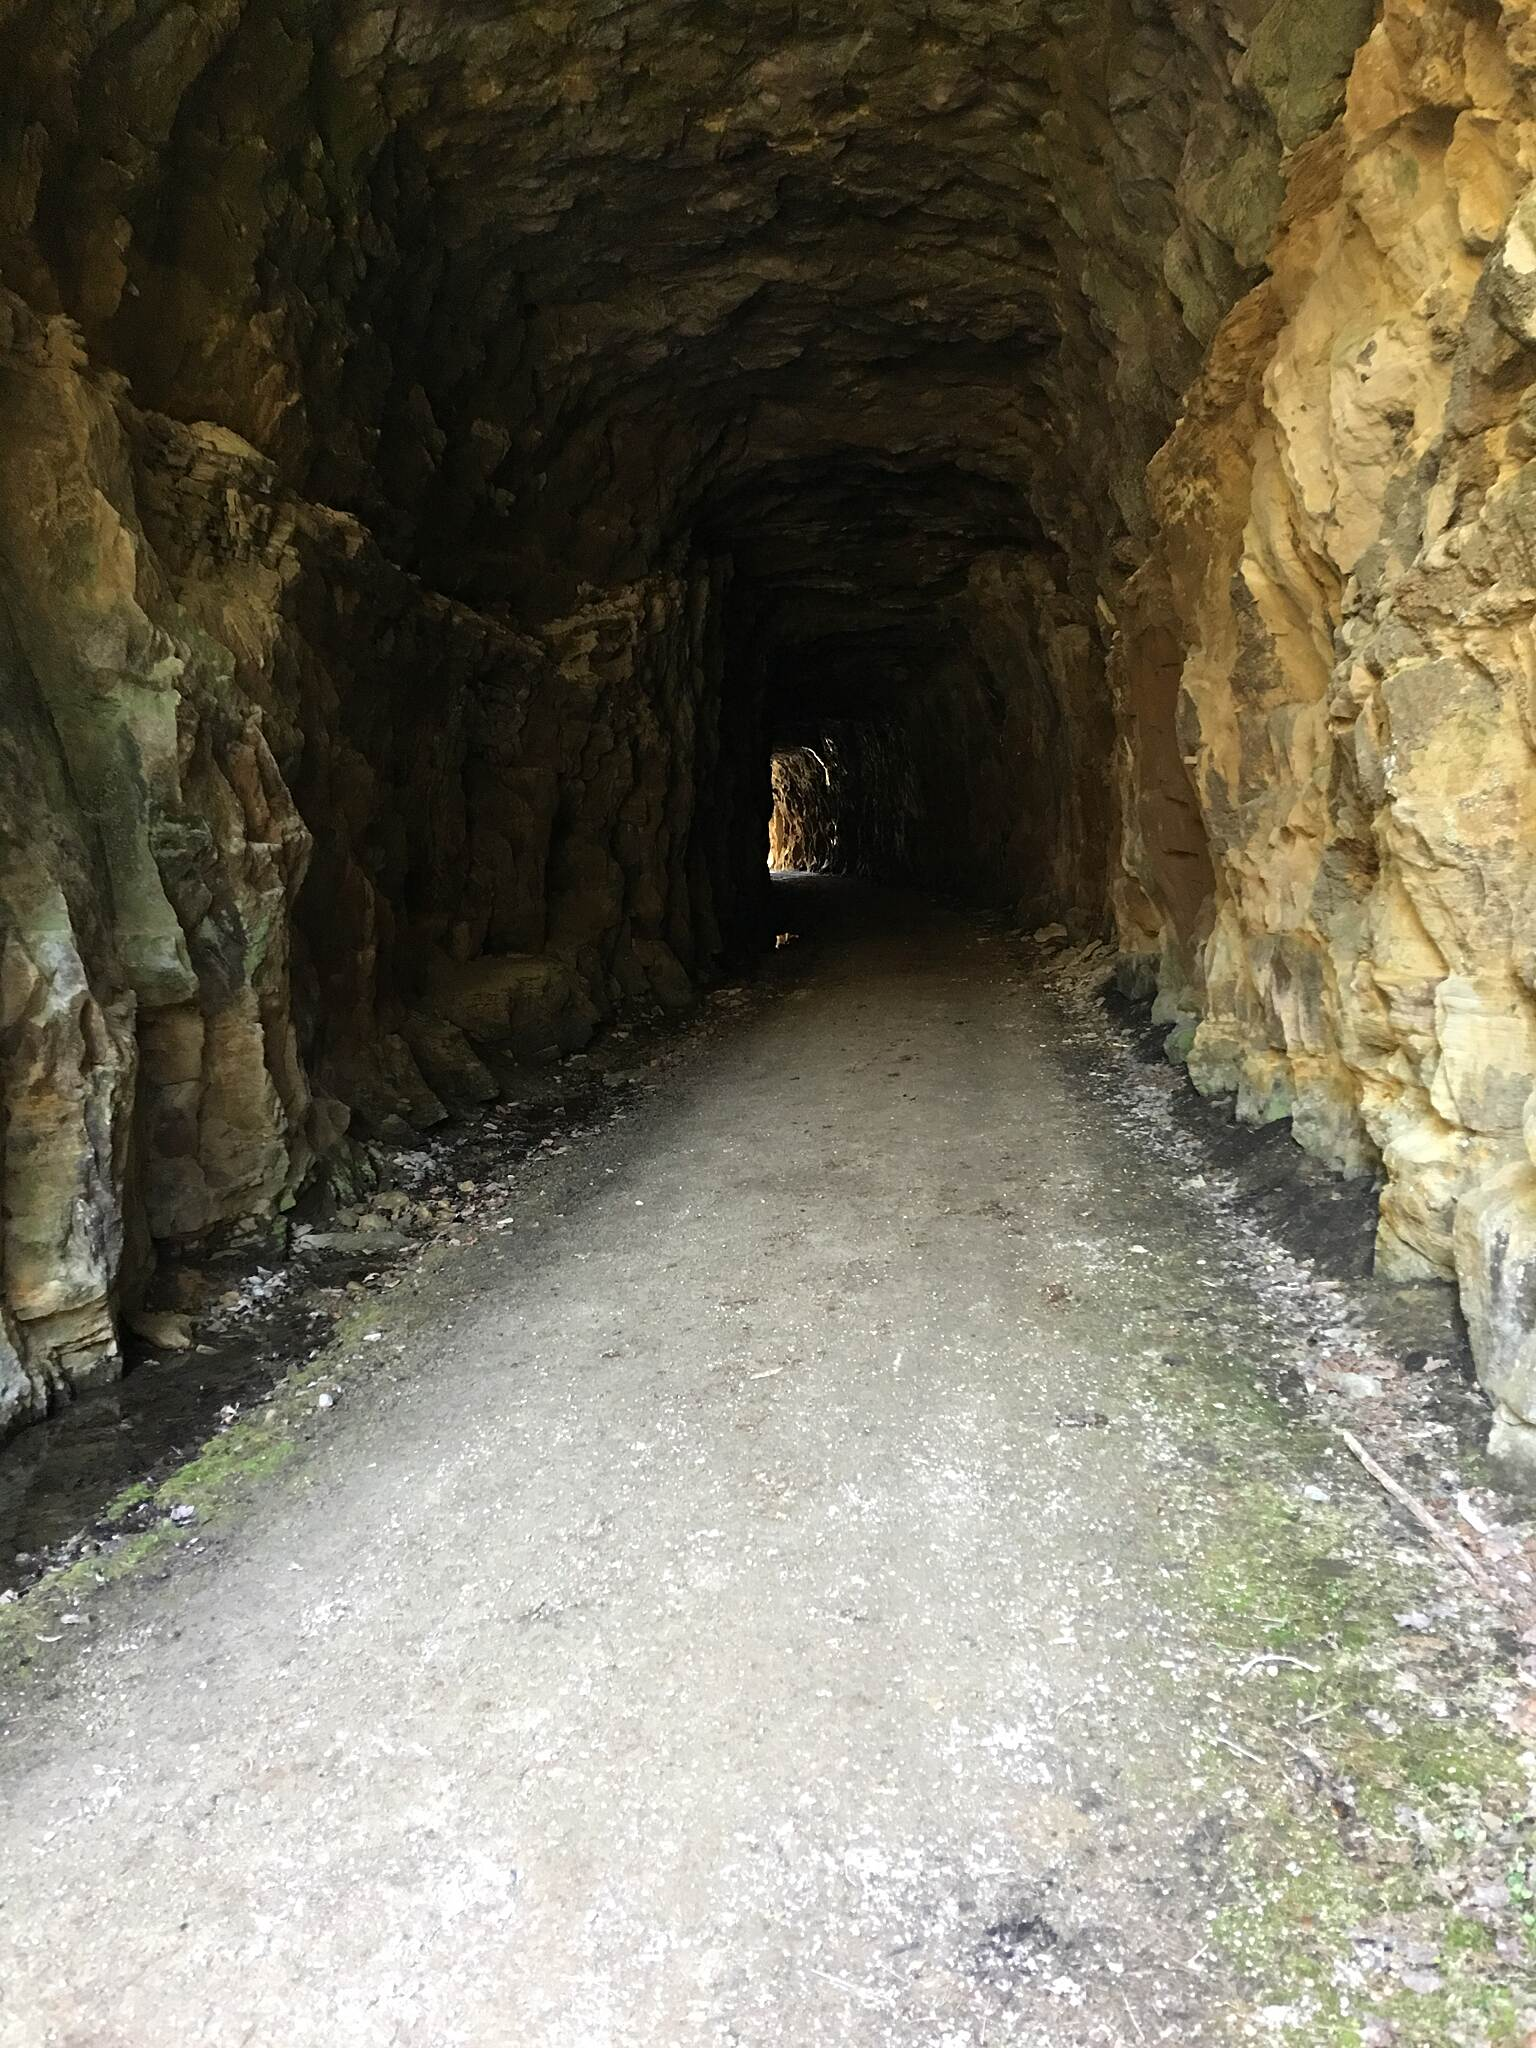 North Bend Rail Trail All natural cut stone tunnel #10 Ellenboro to Cairo-RMS